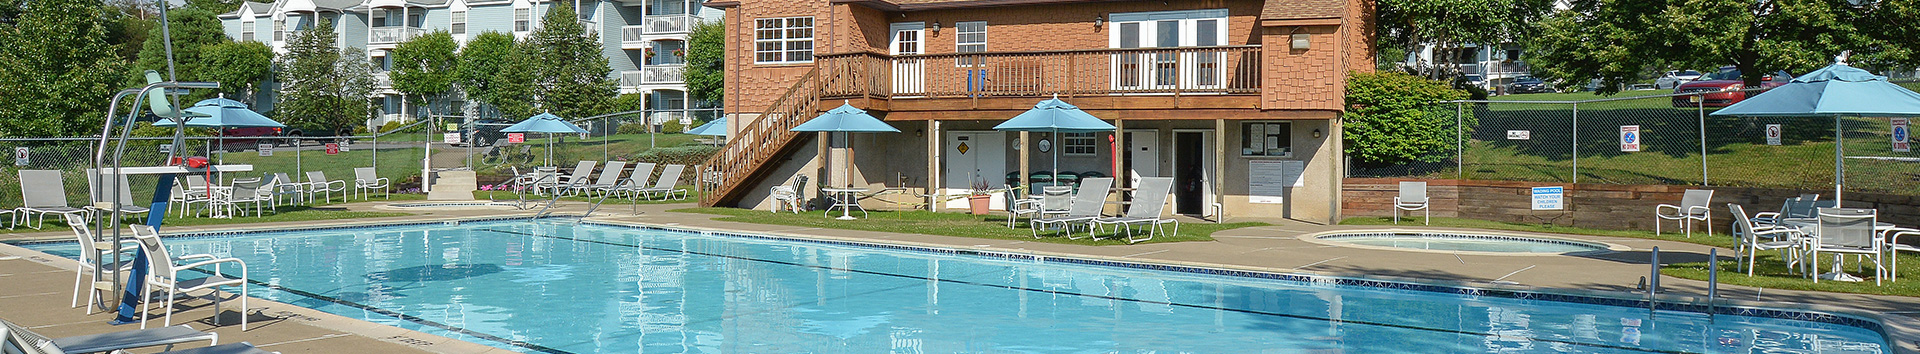 Swimming Pool of East Mountain Apatments at Manor Communities, Wilkes-Barre/Pennsylvania